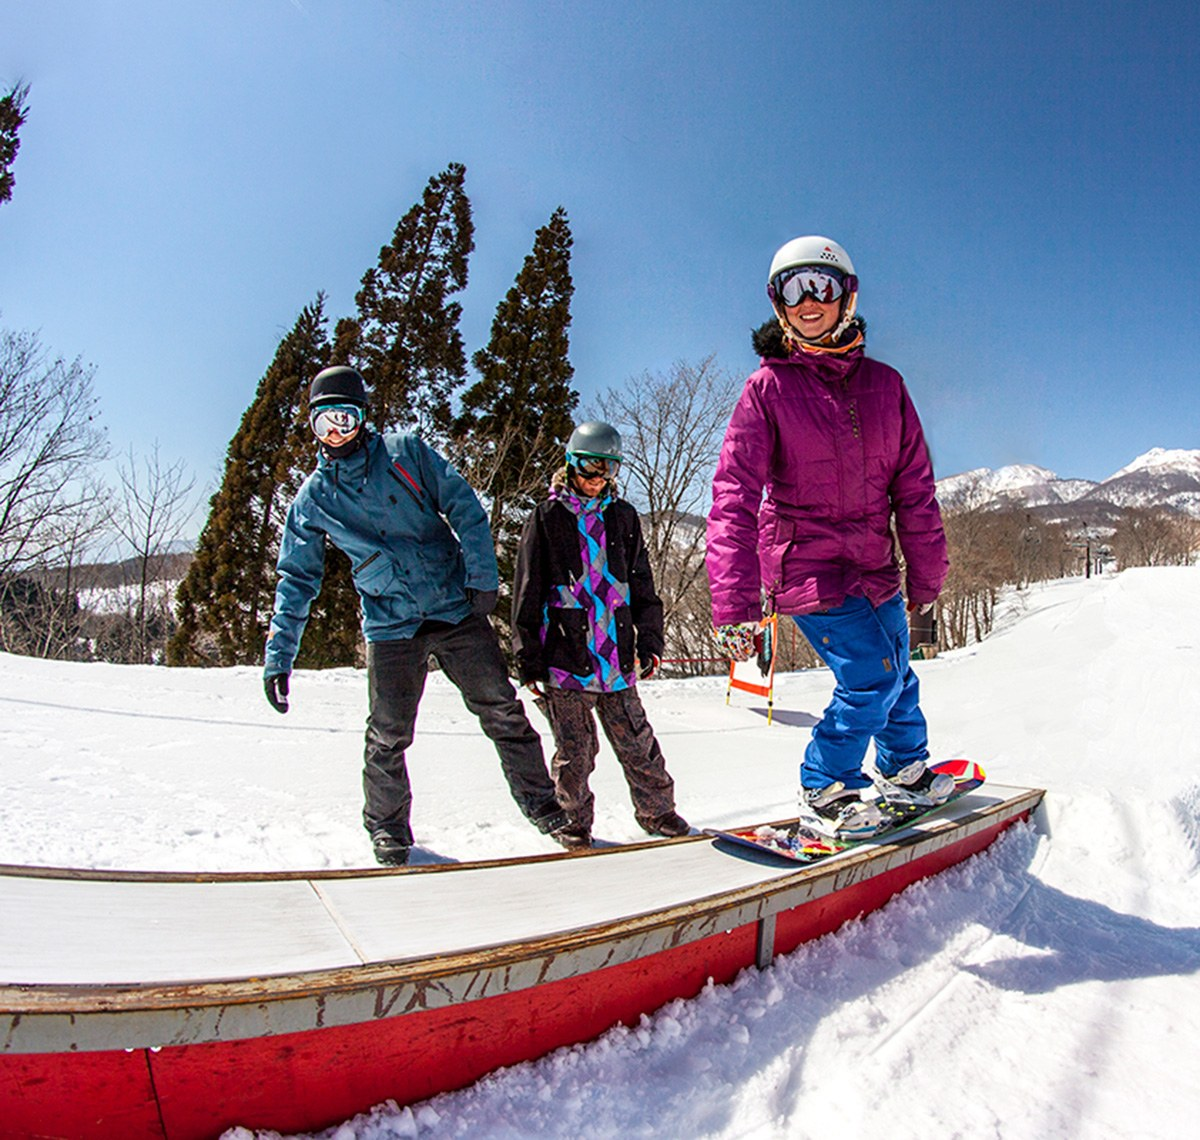 S4-SB-Times-1200w-x-1140w-400wx380h Adult (15+) Super 4 Snowboard - Group Lessons